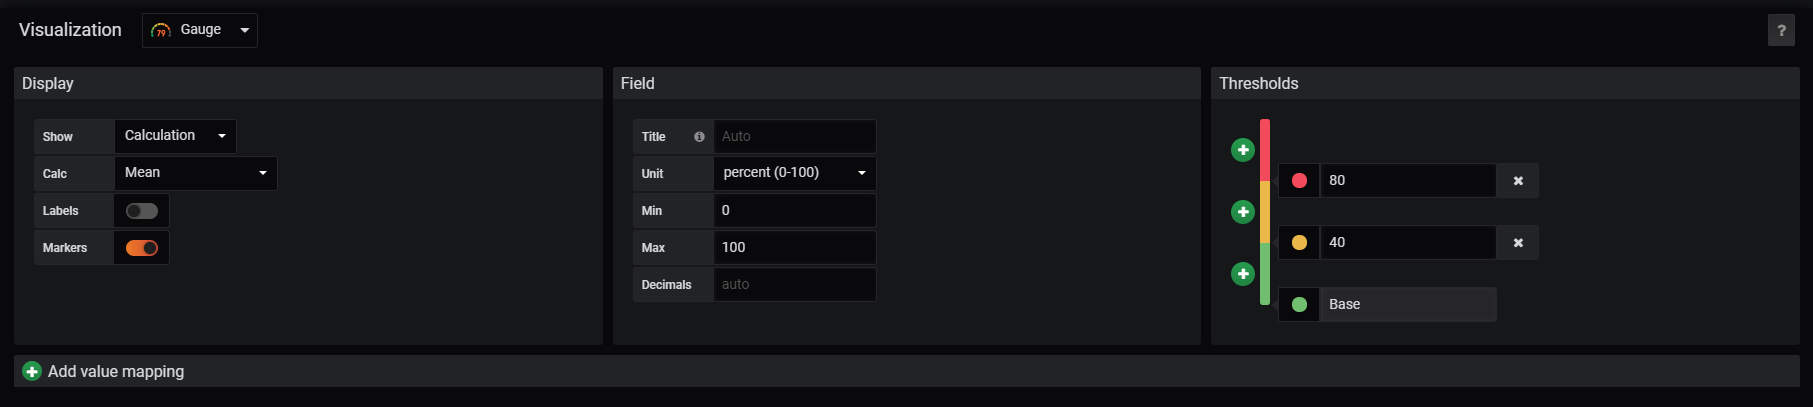 Grafana display options